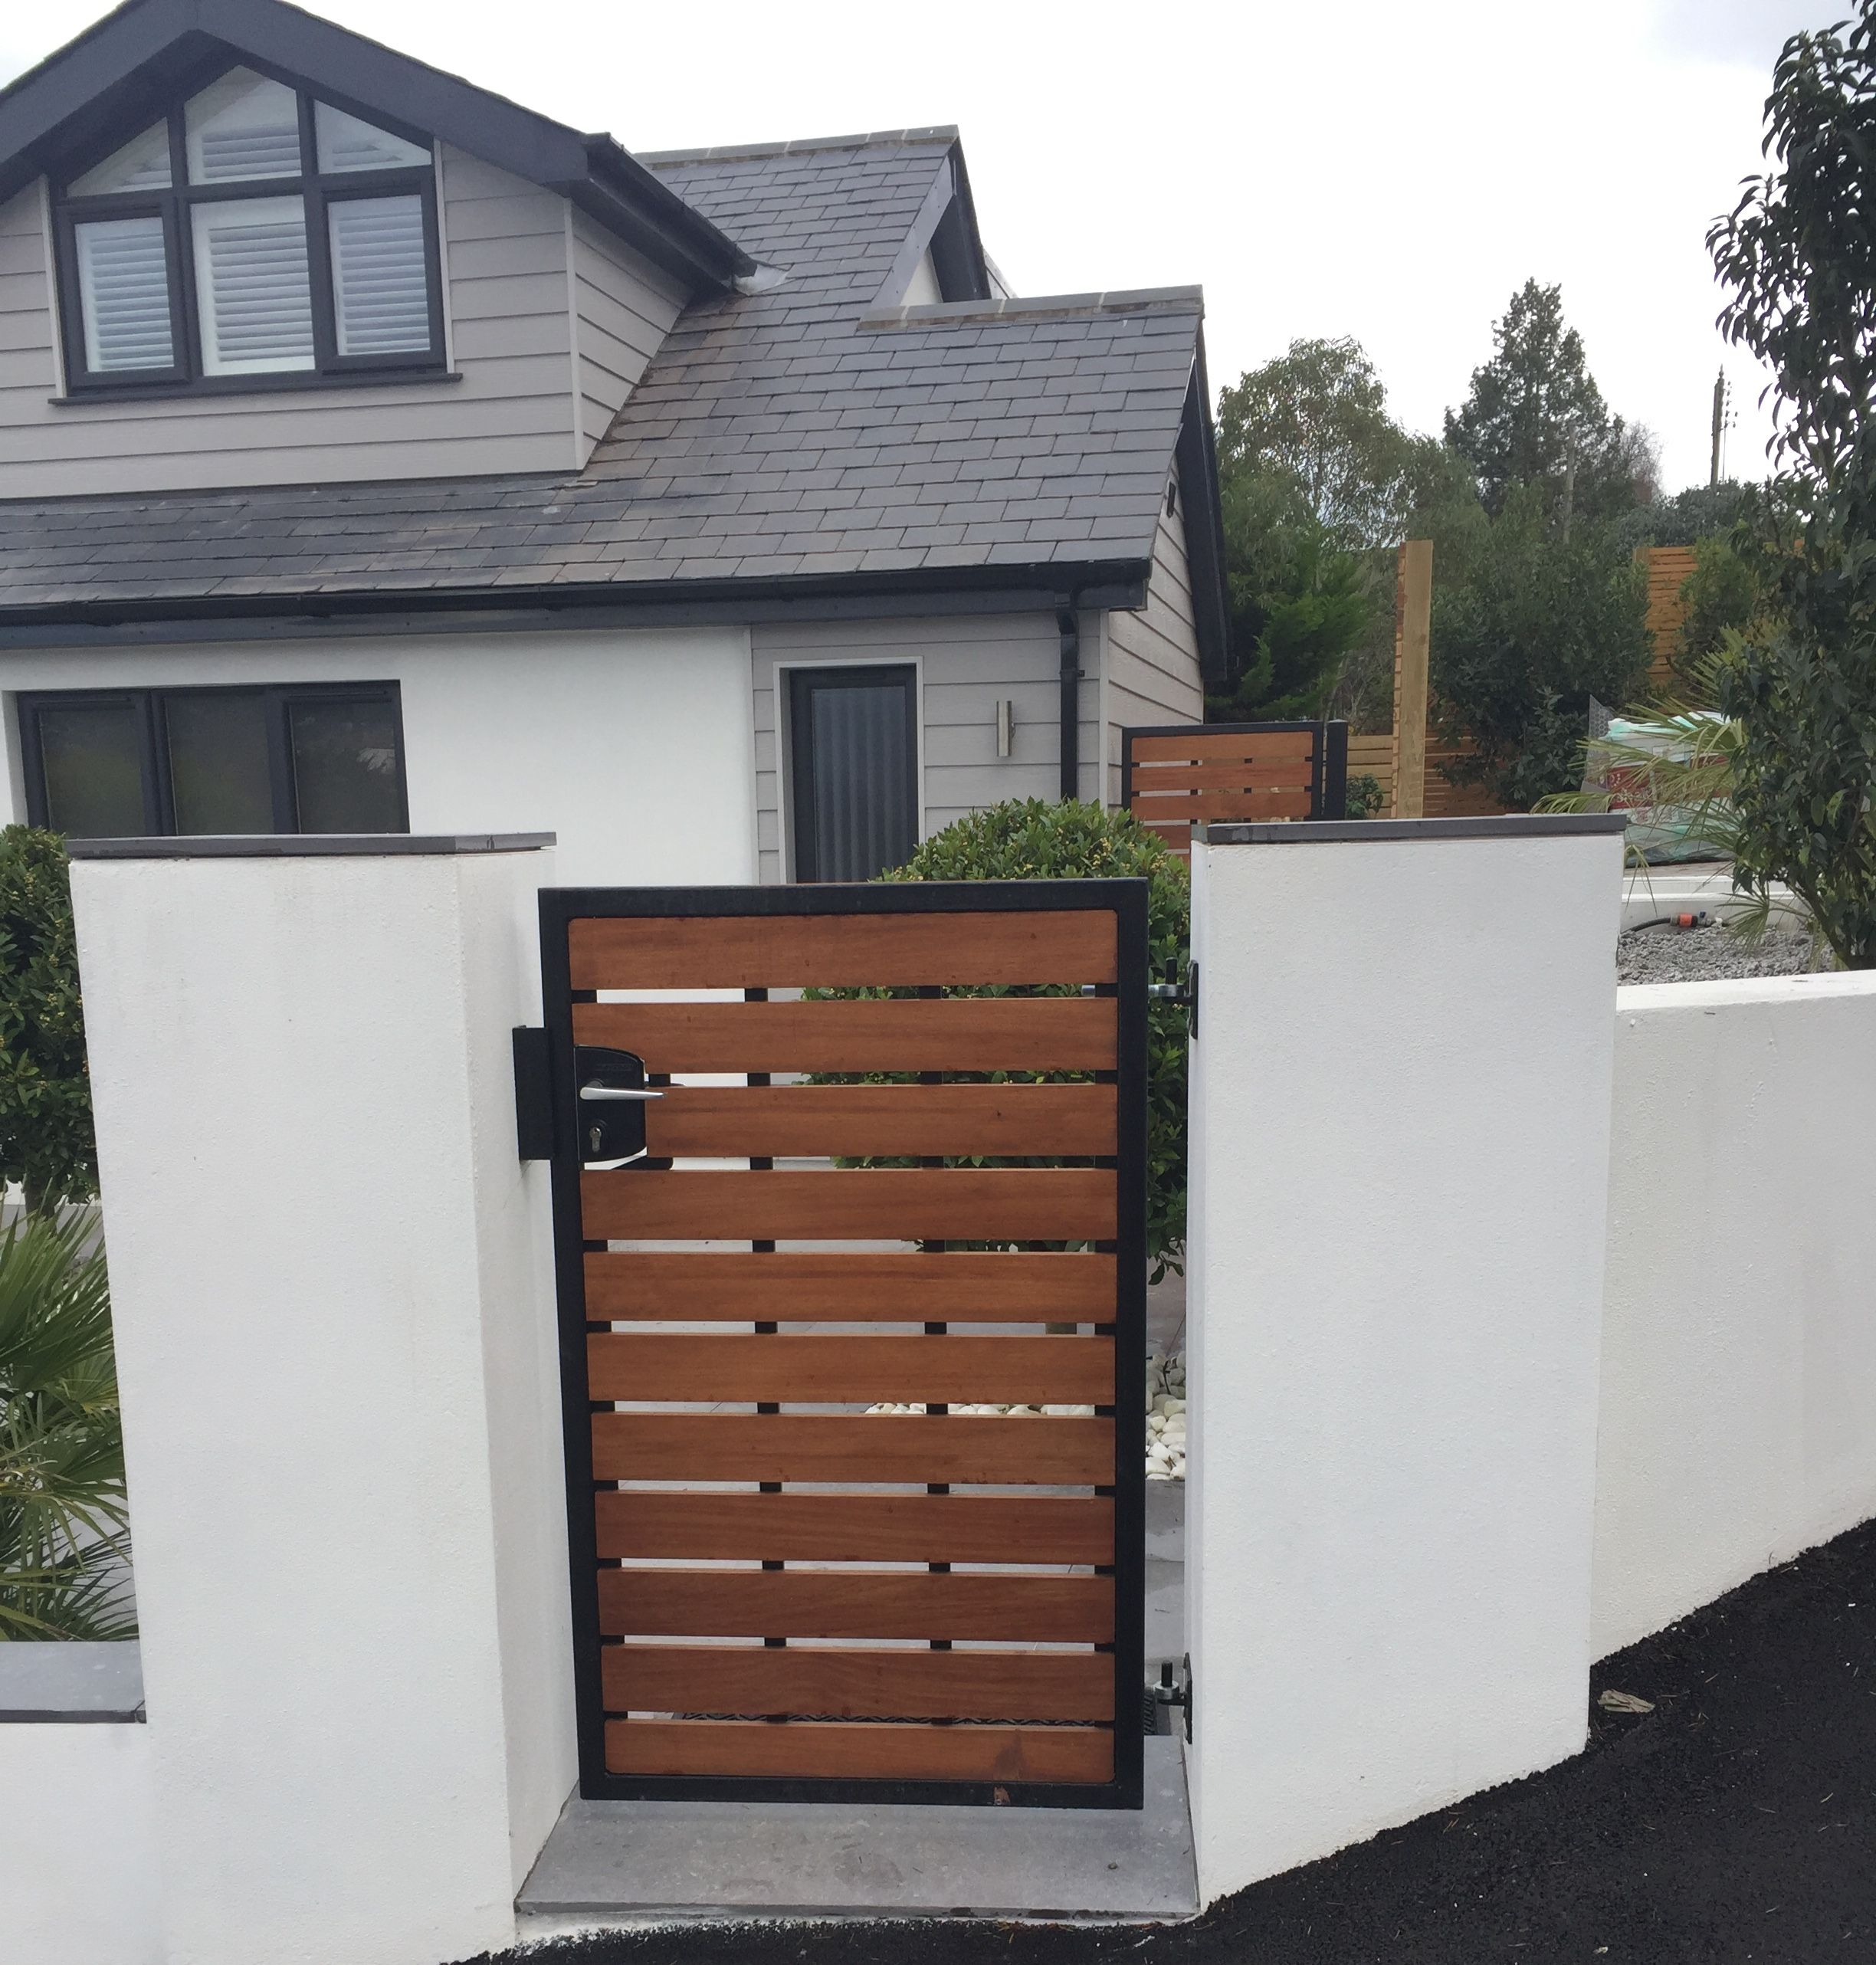 The kingston garden gate deep metal frame combined with the finest